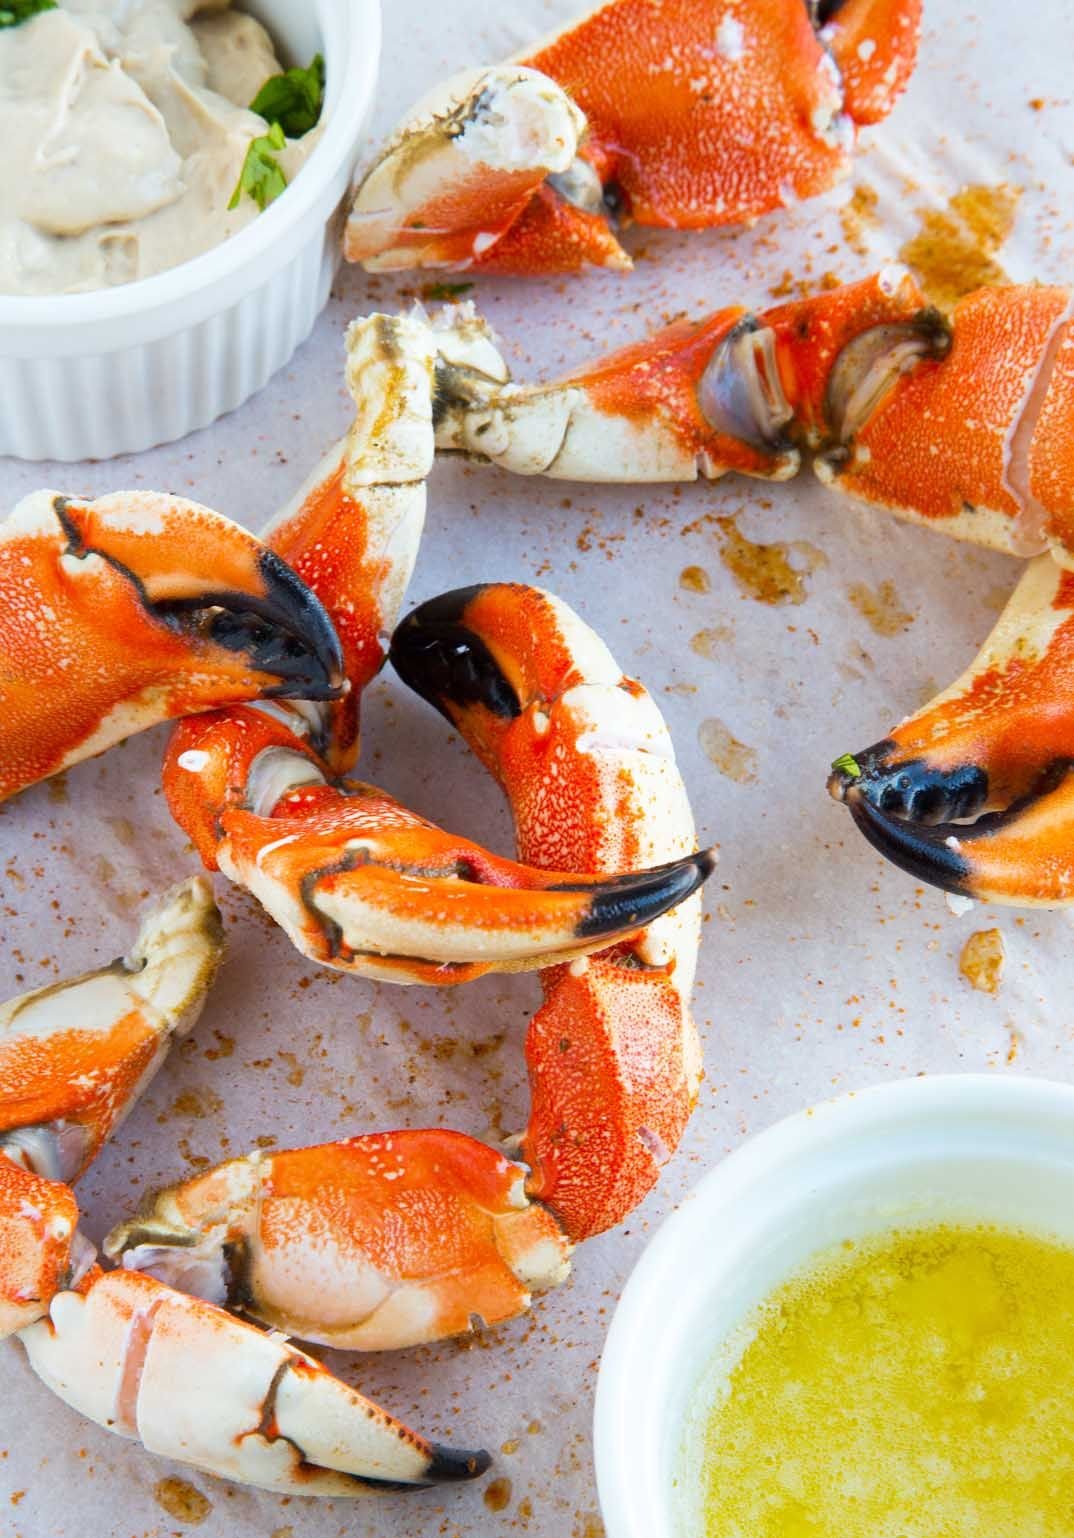 Jonah Crab Claws Because Seafood makes you smile Chef